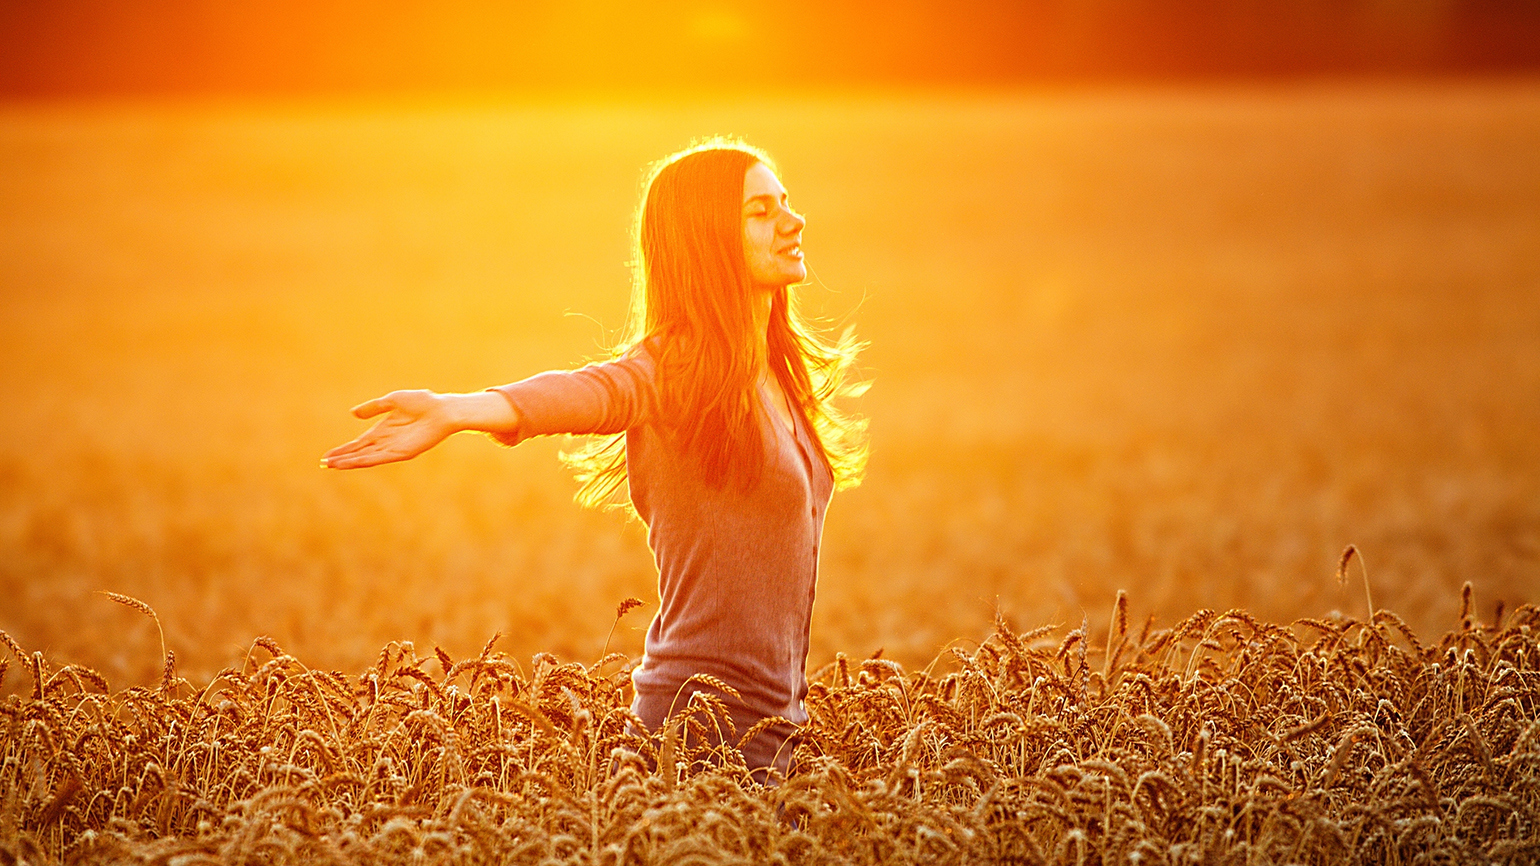 A woman in a sun-drenched field of wheat